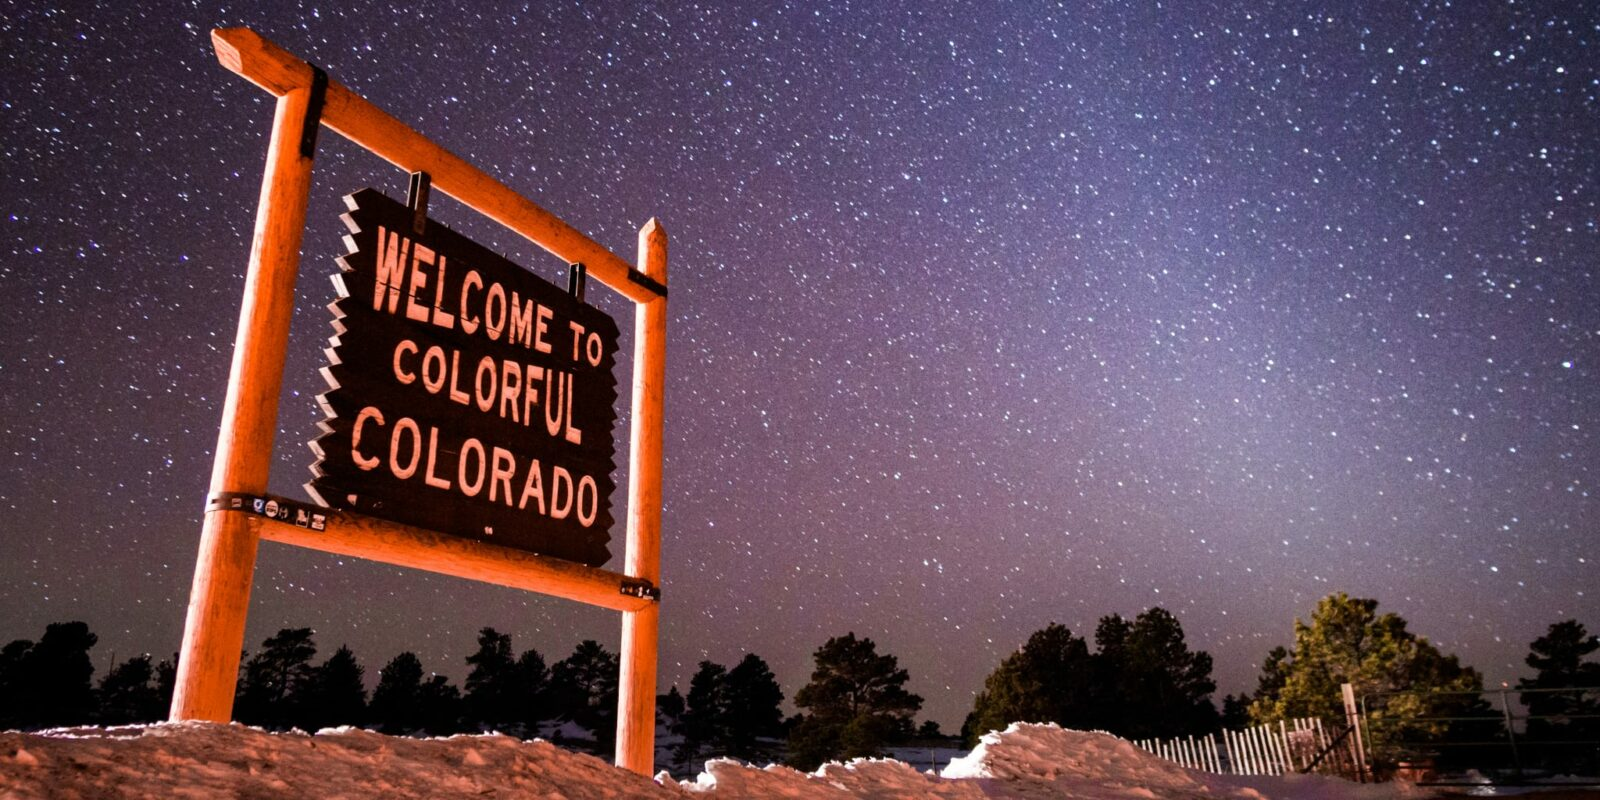 Colorful Colorado Sign Night Sky Stars